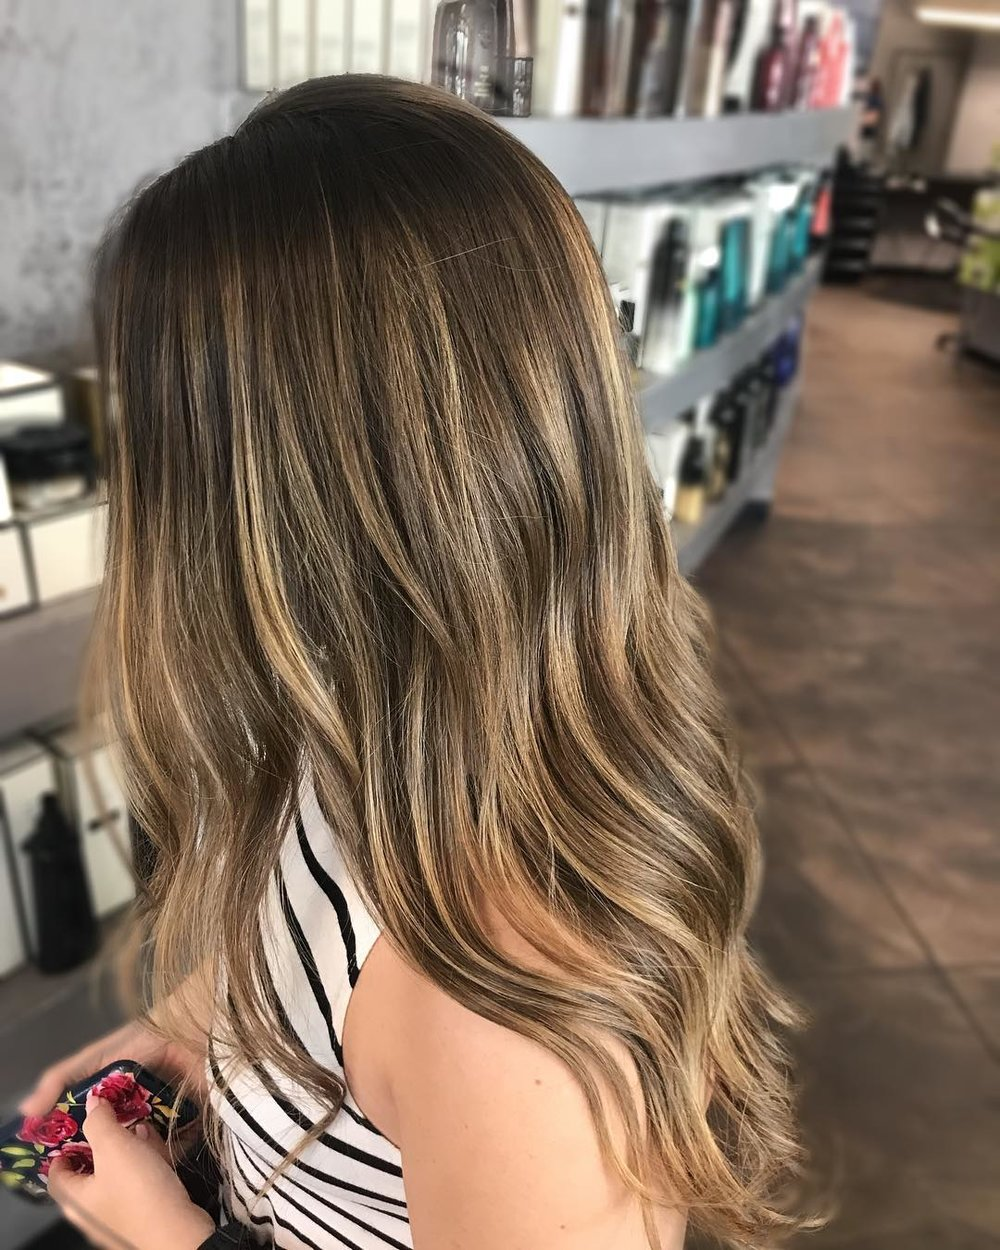 best-hair-styles-oklahoma-city (20).jpg